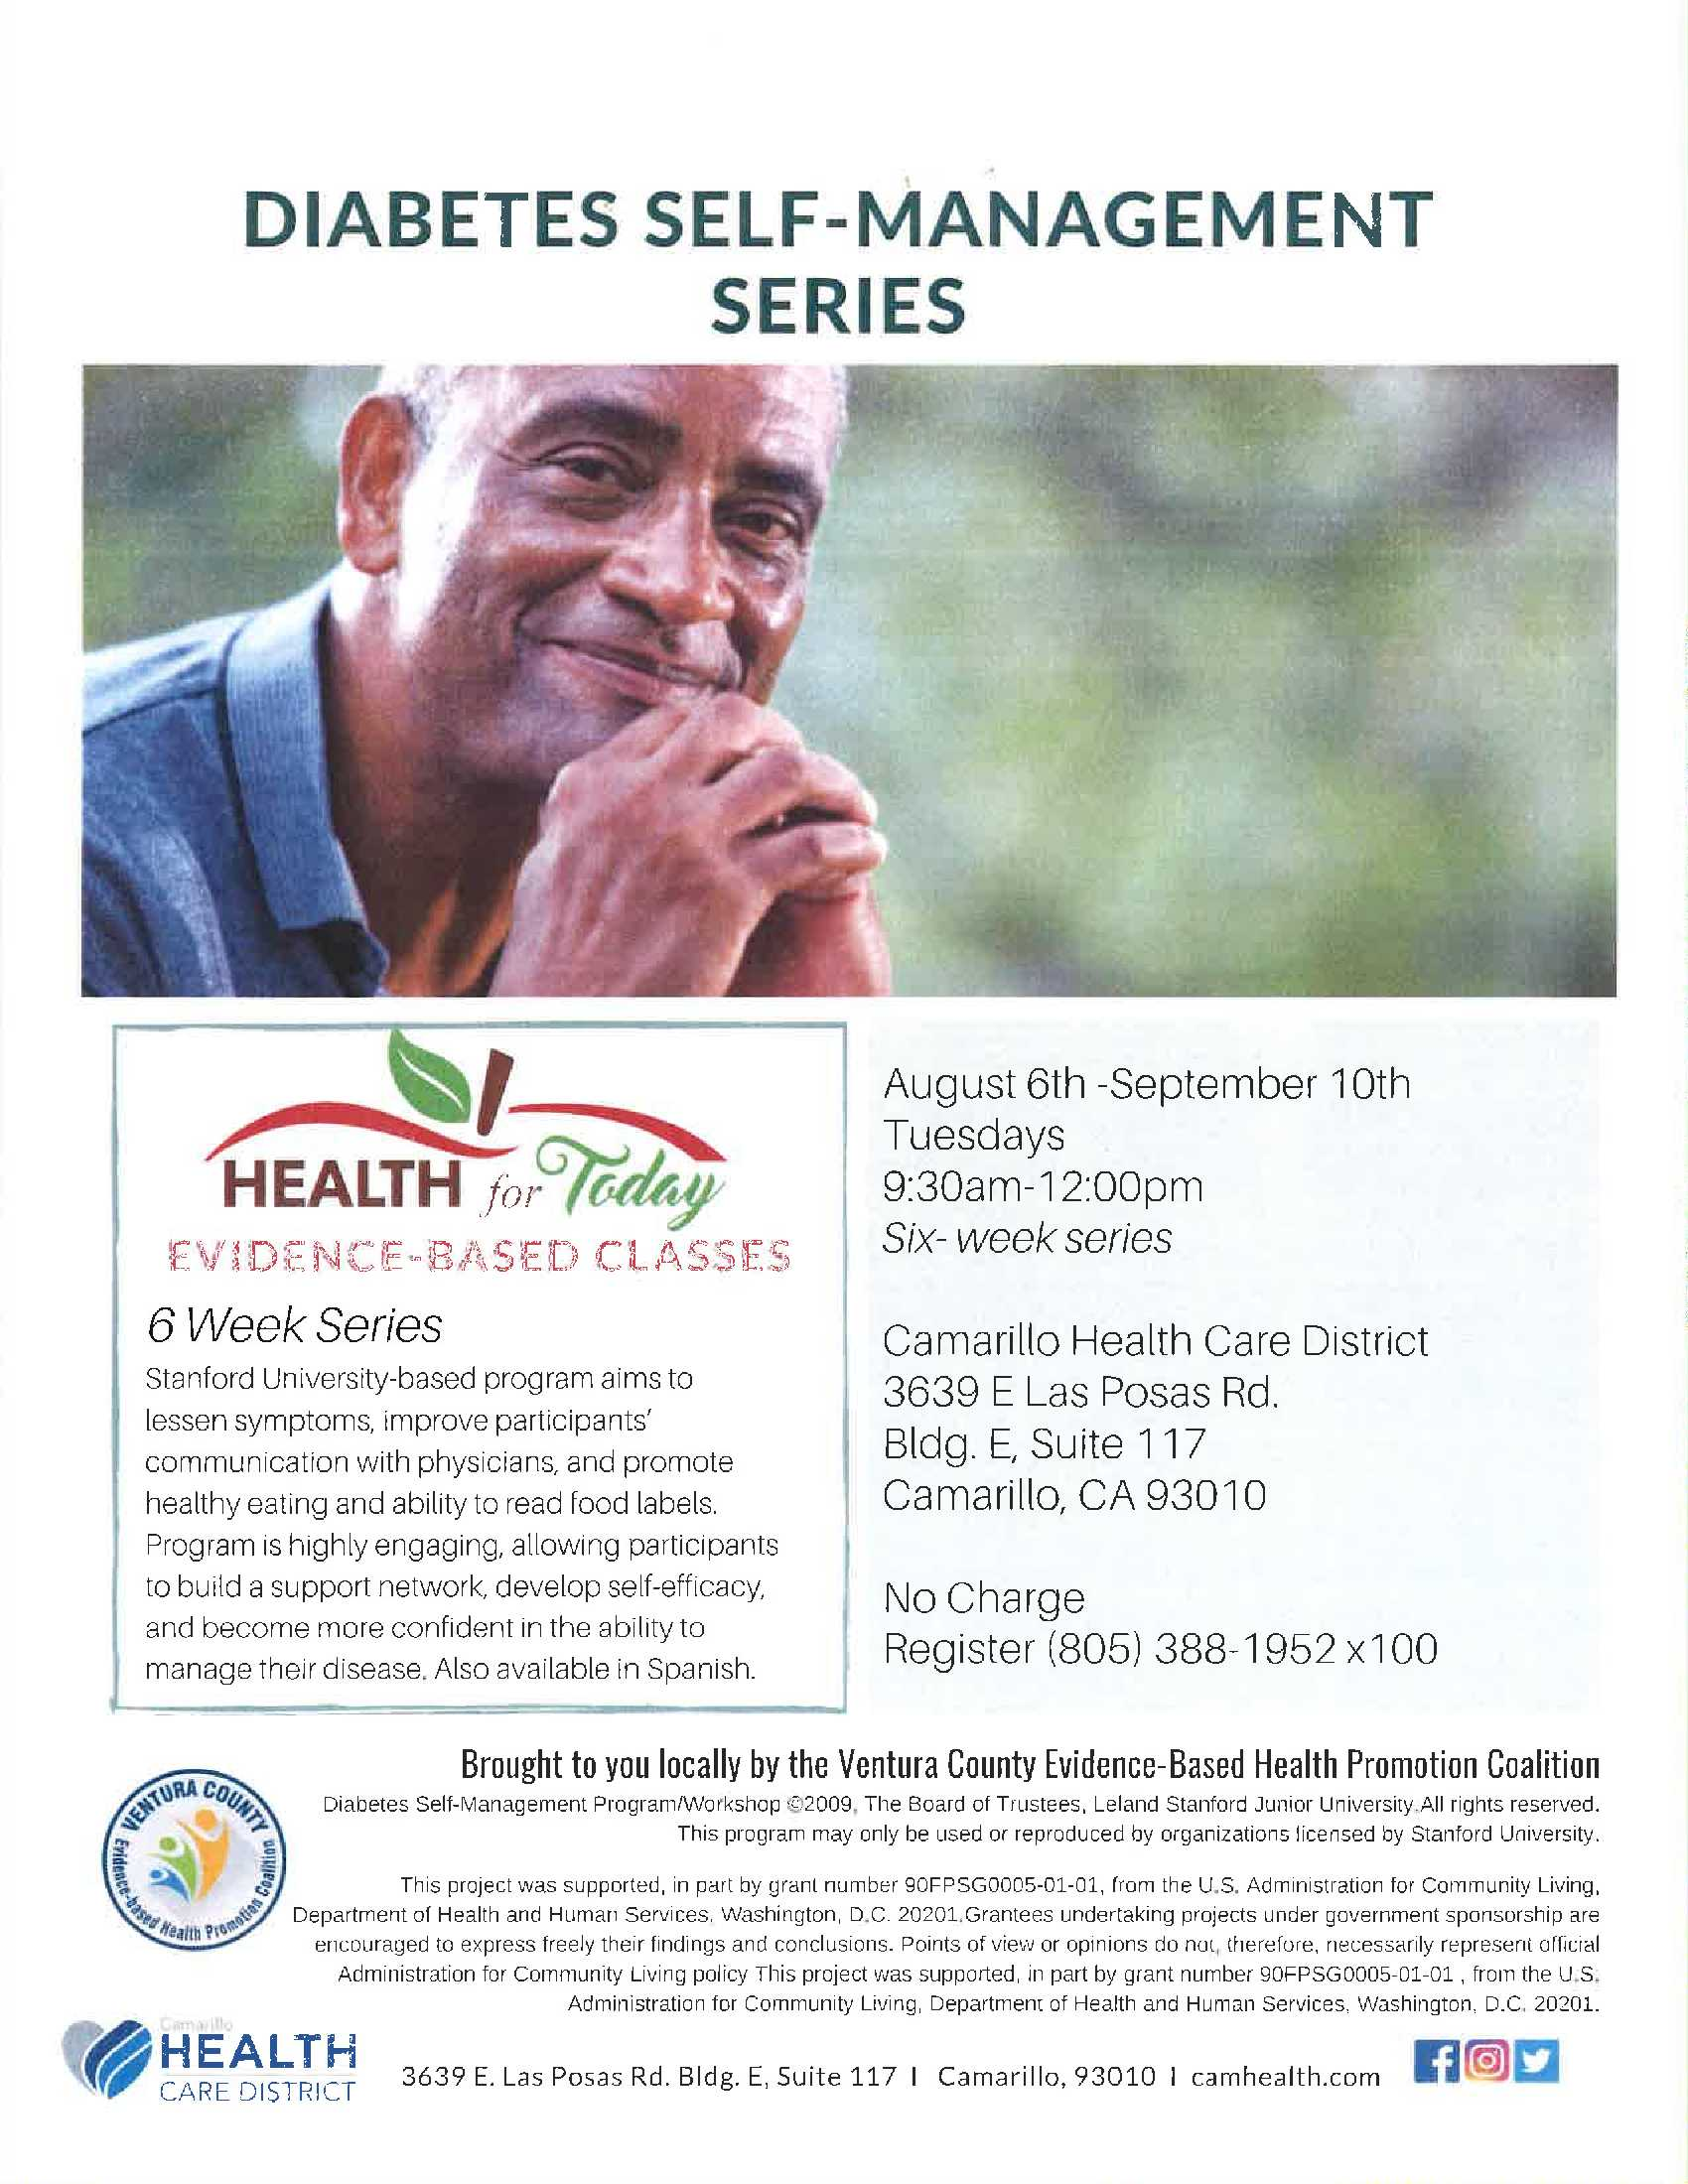 August 6 To September 10 Diabetes Self Management Series